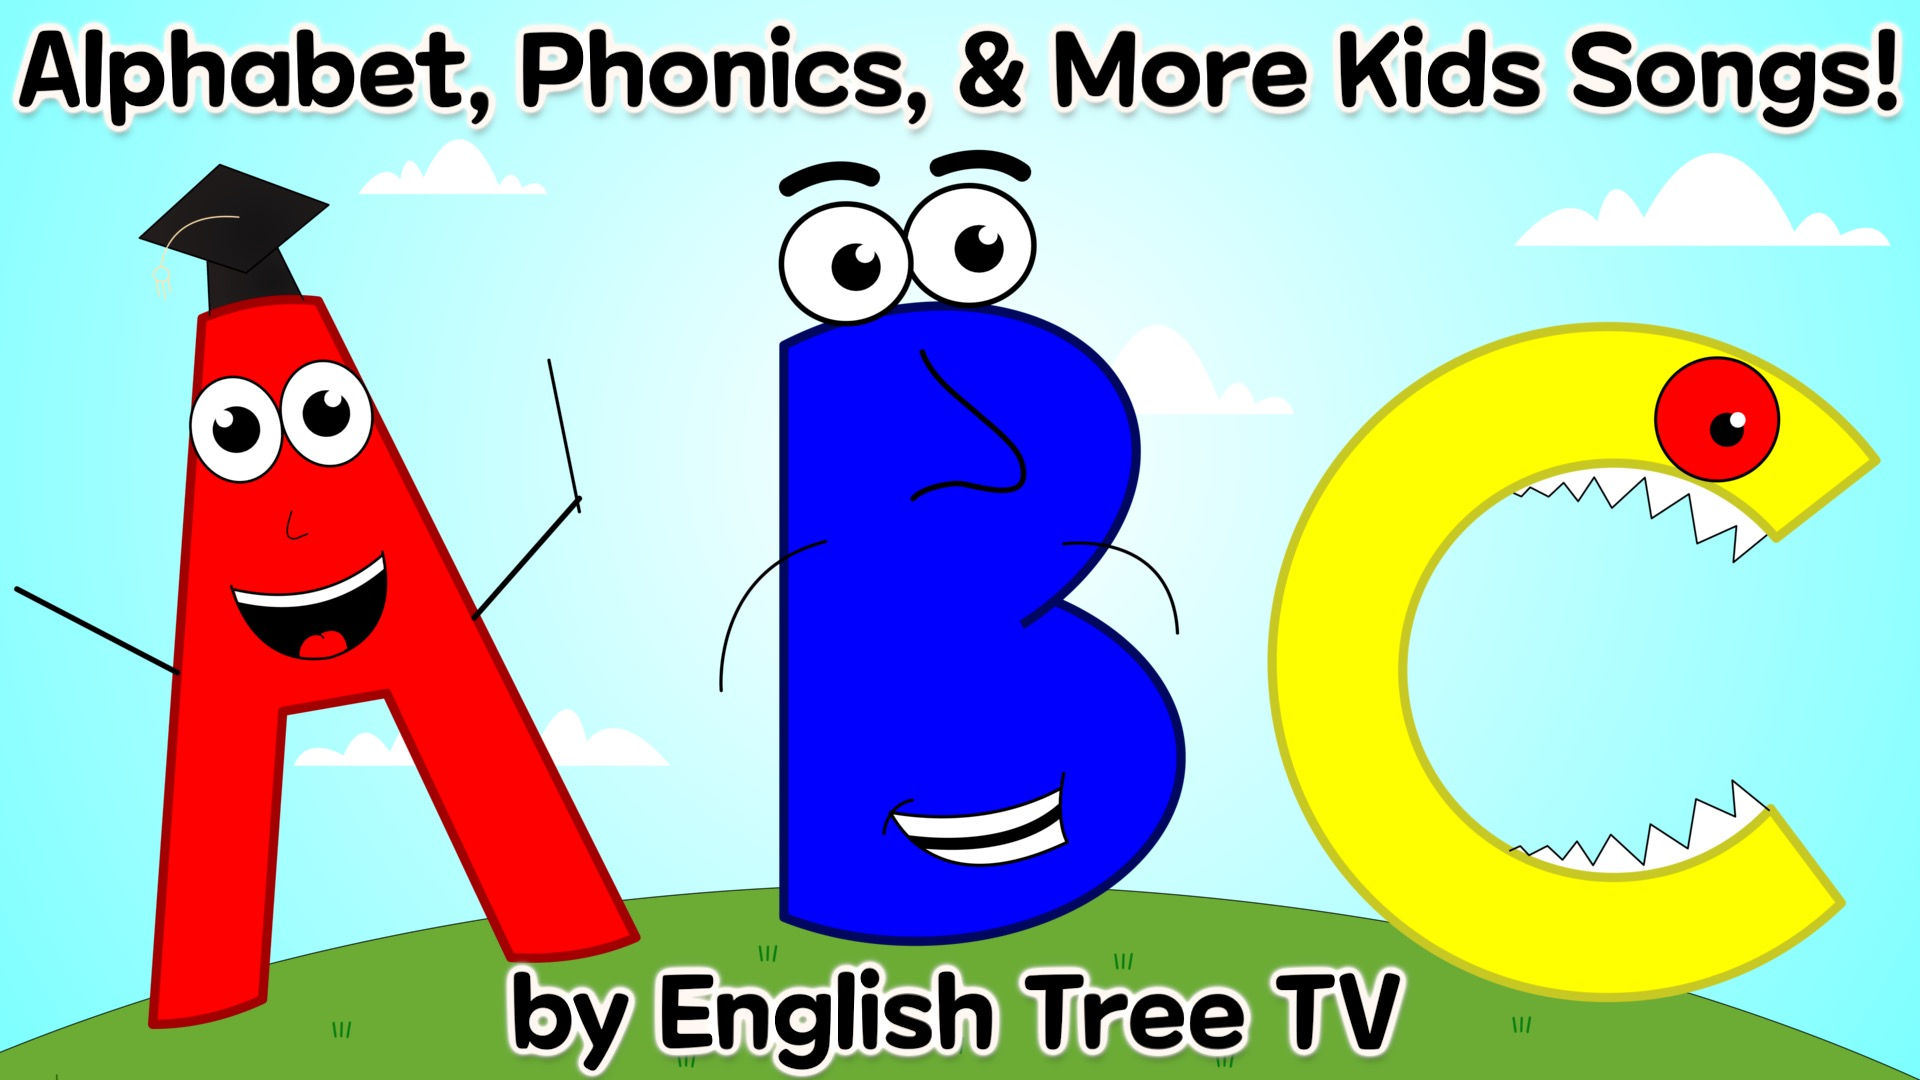 Alphabet, Phonics, & More Kids Songs! by English Tree TV